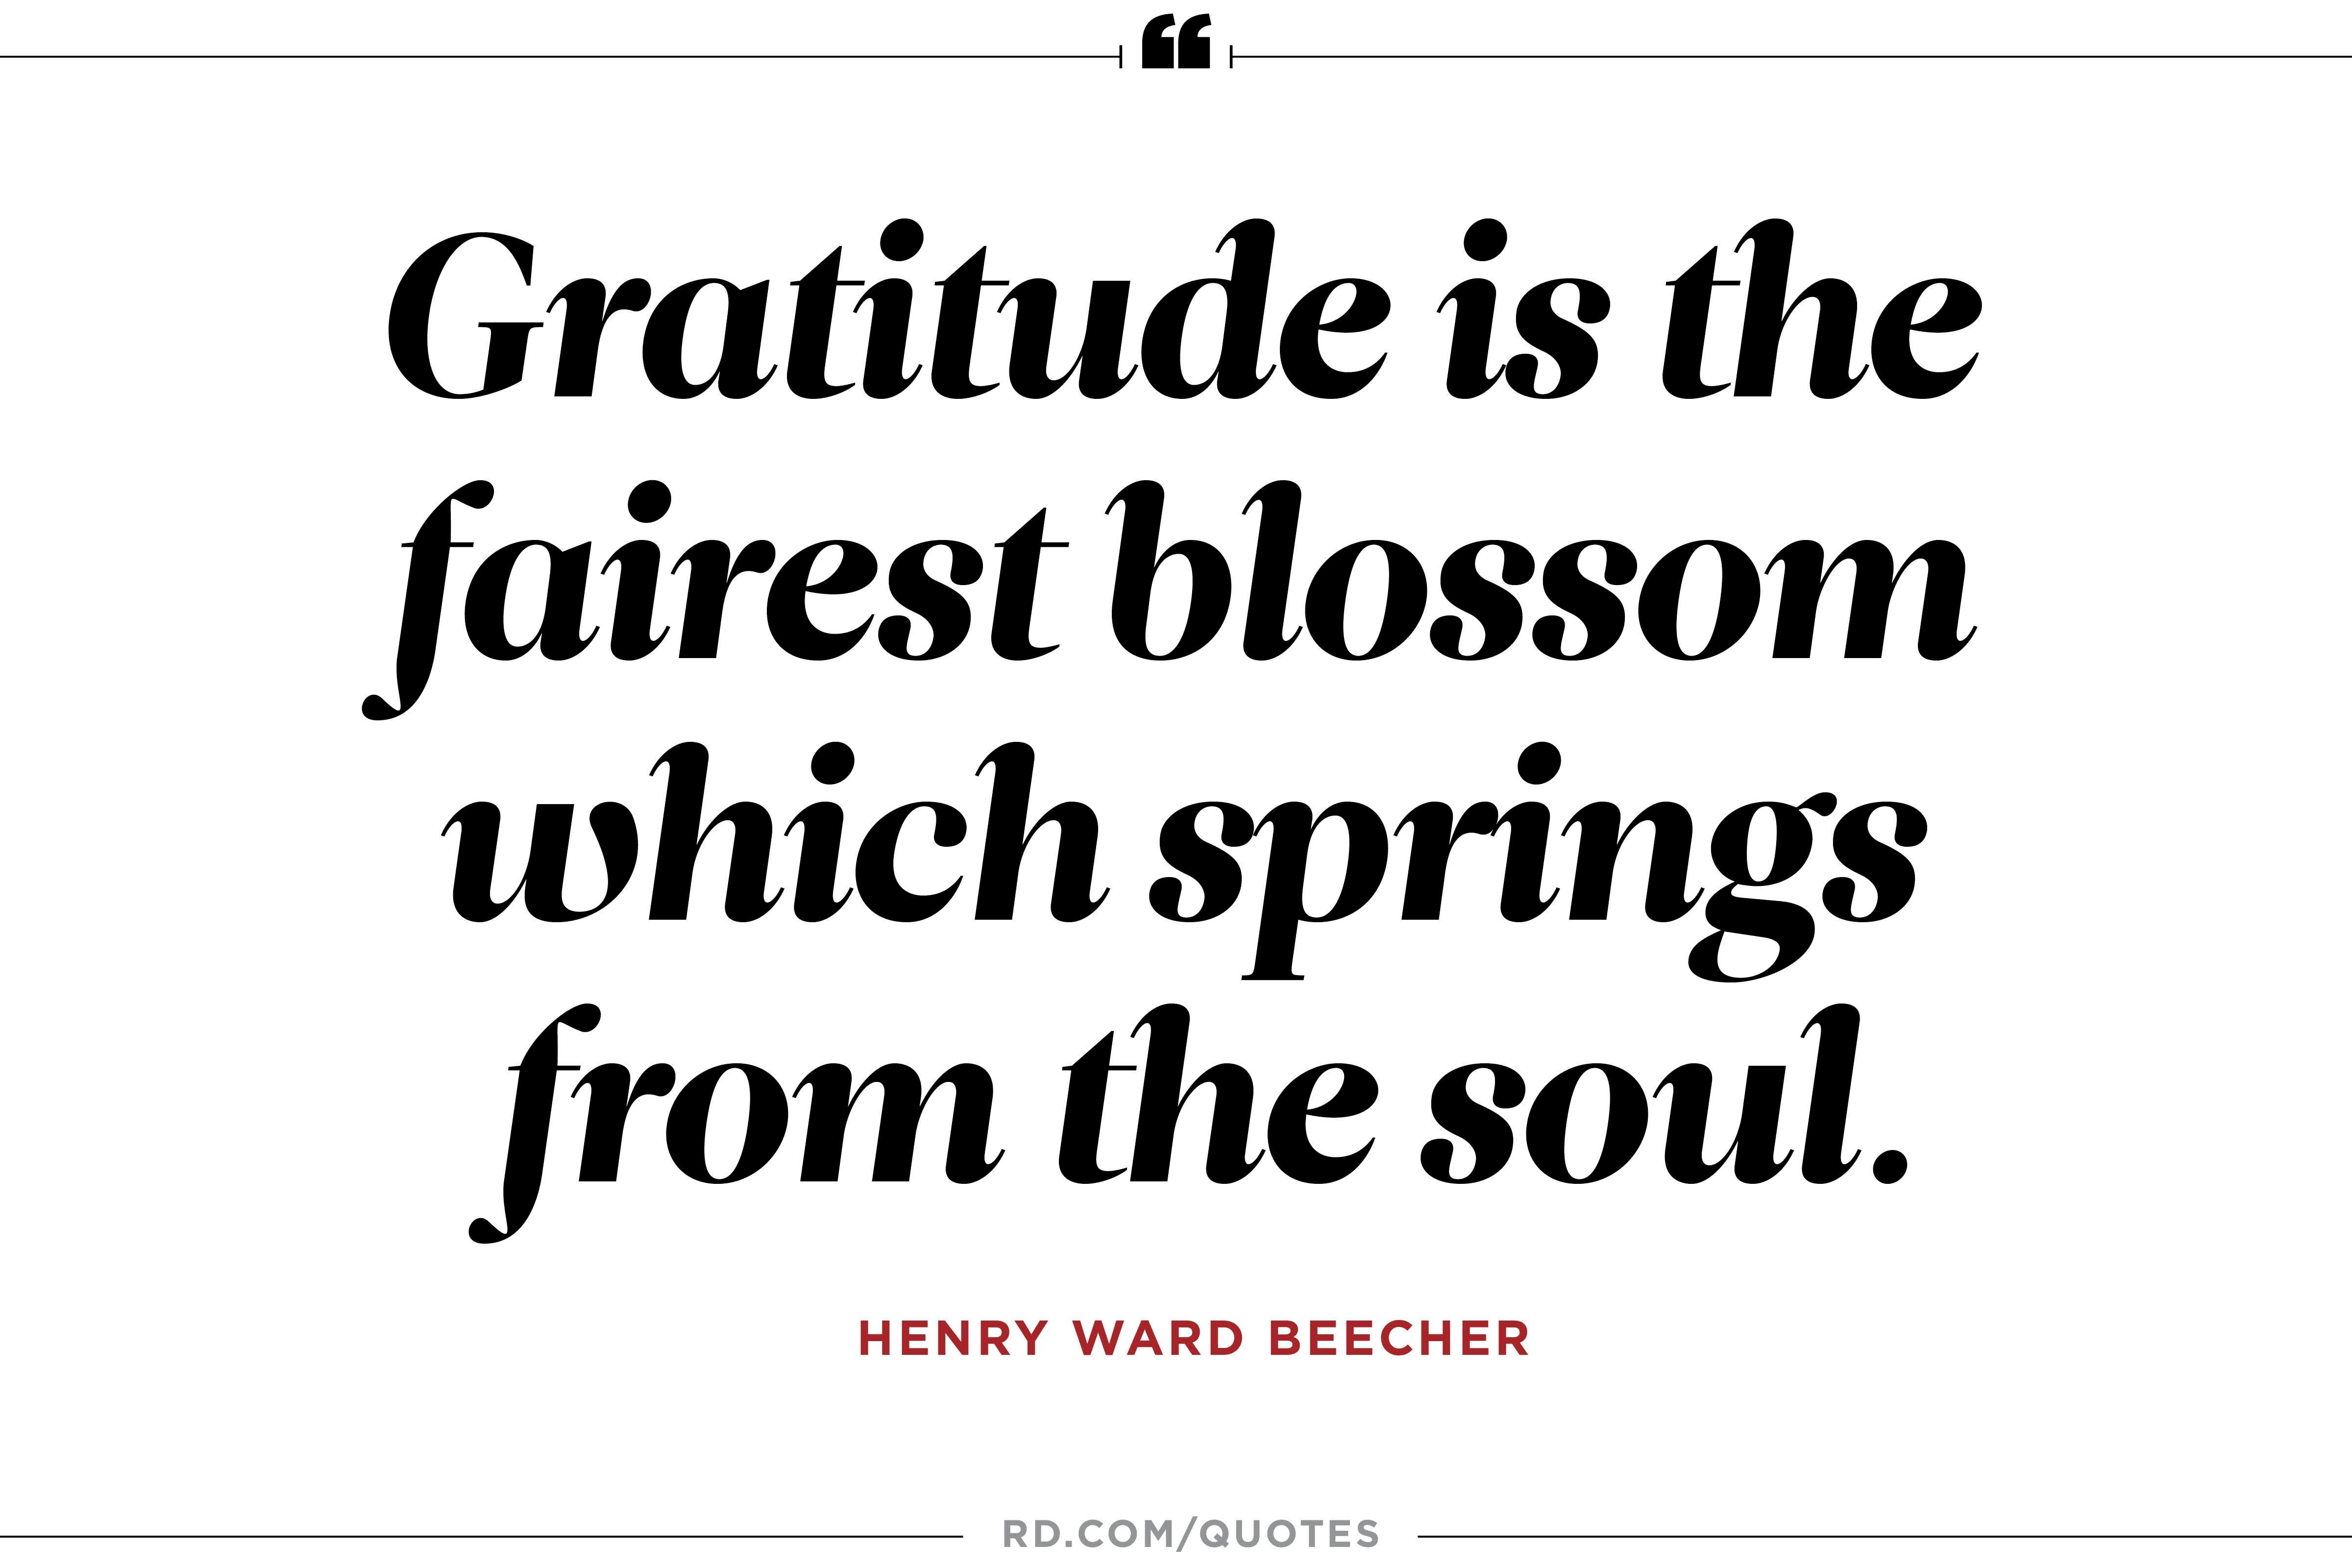 Warm and Fuzzy Quotes to Inspire Gratitude7